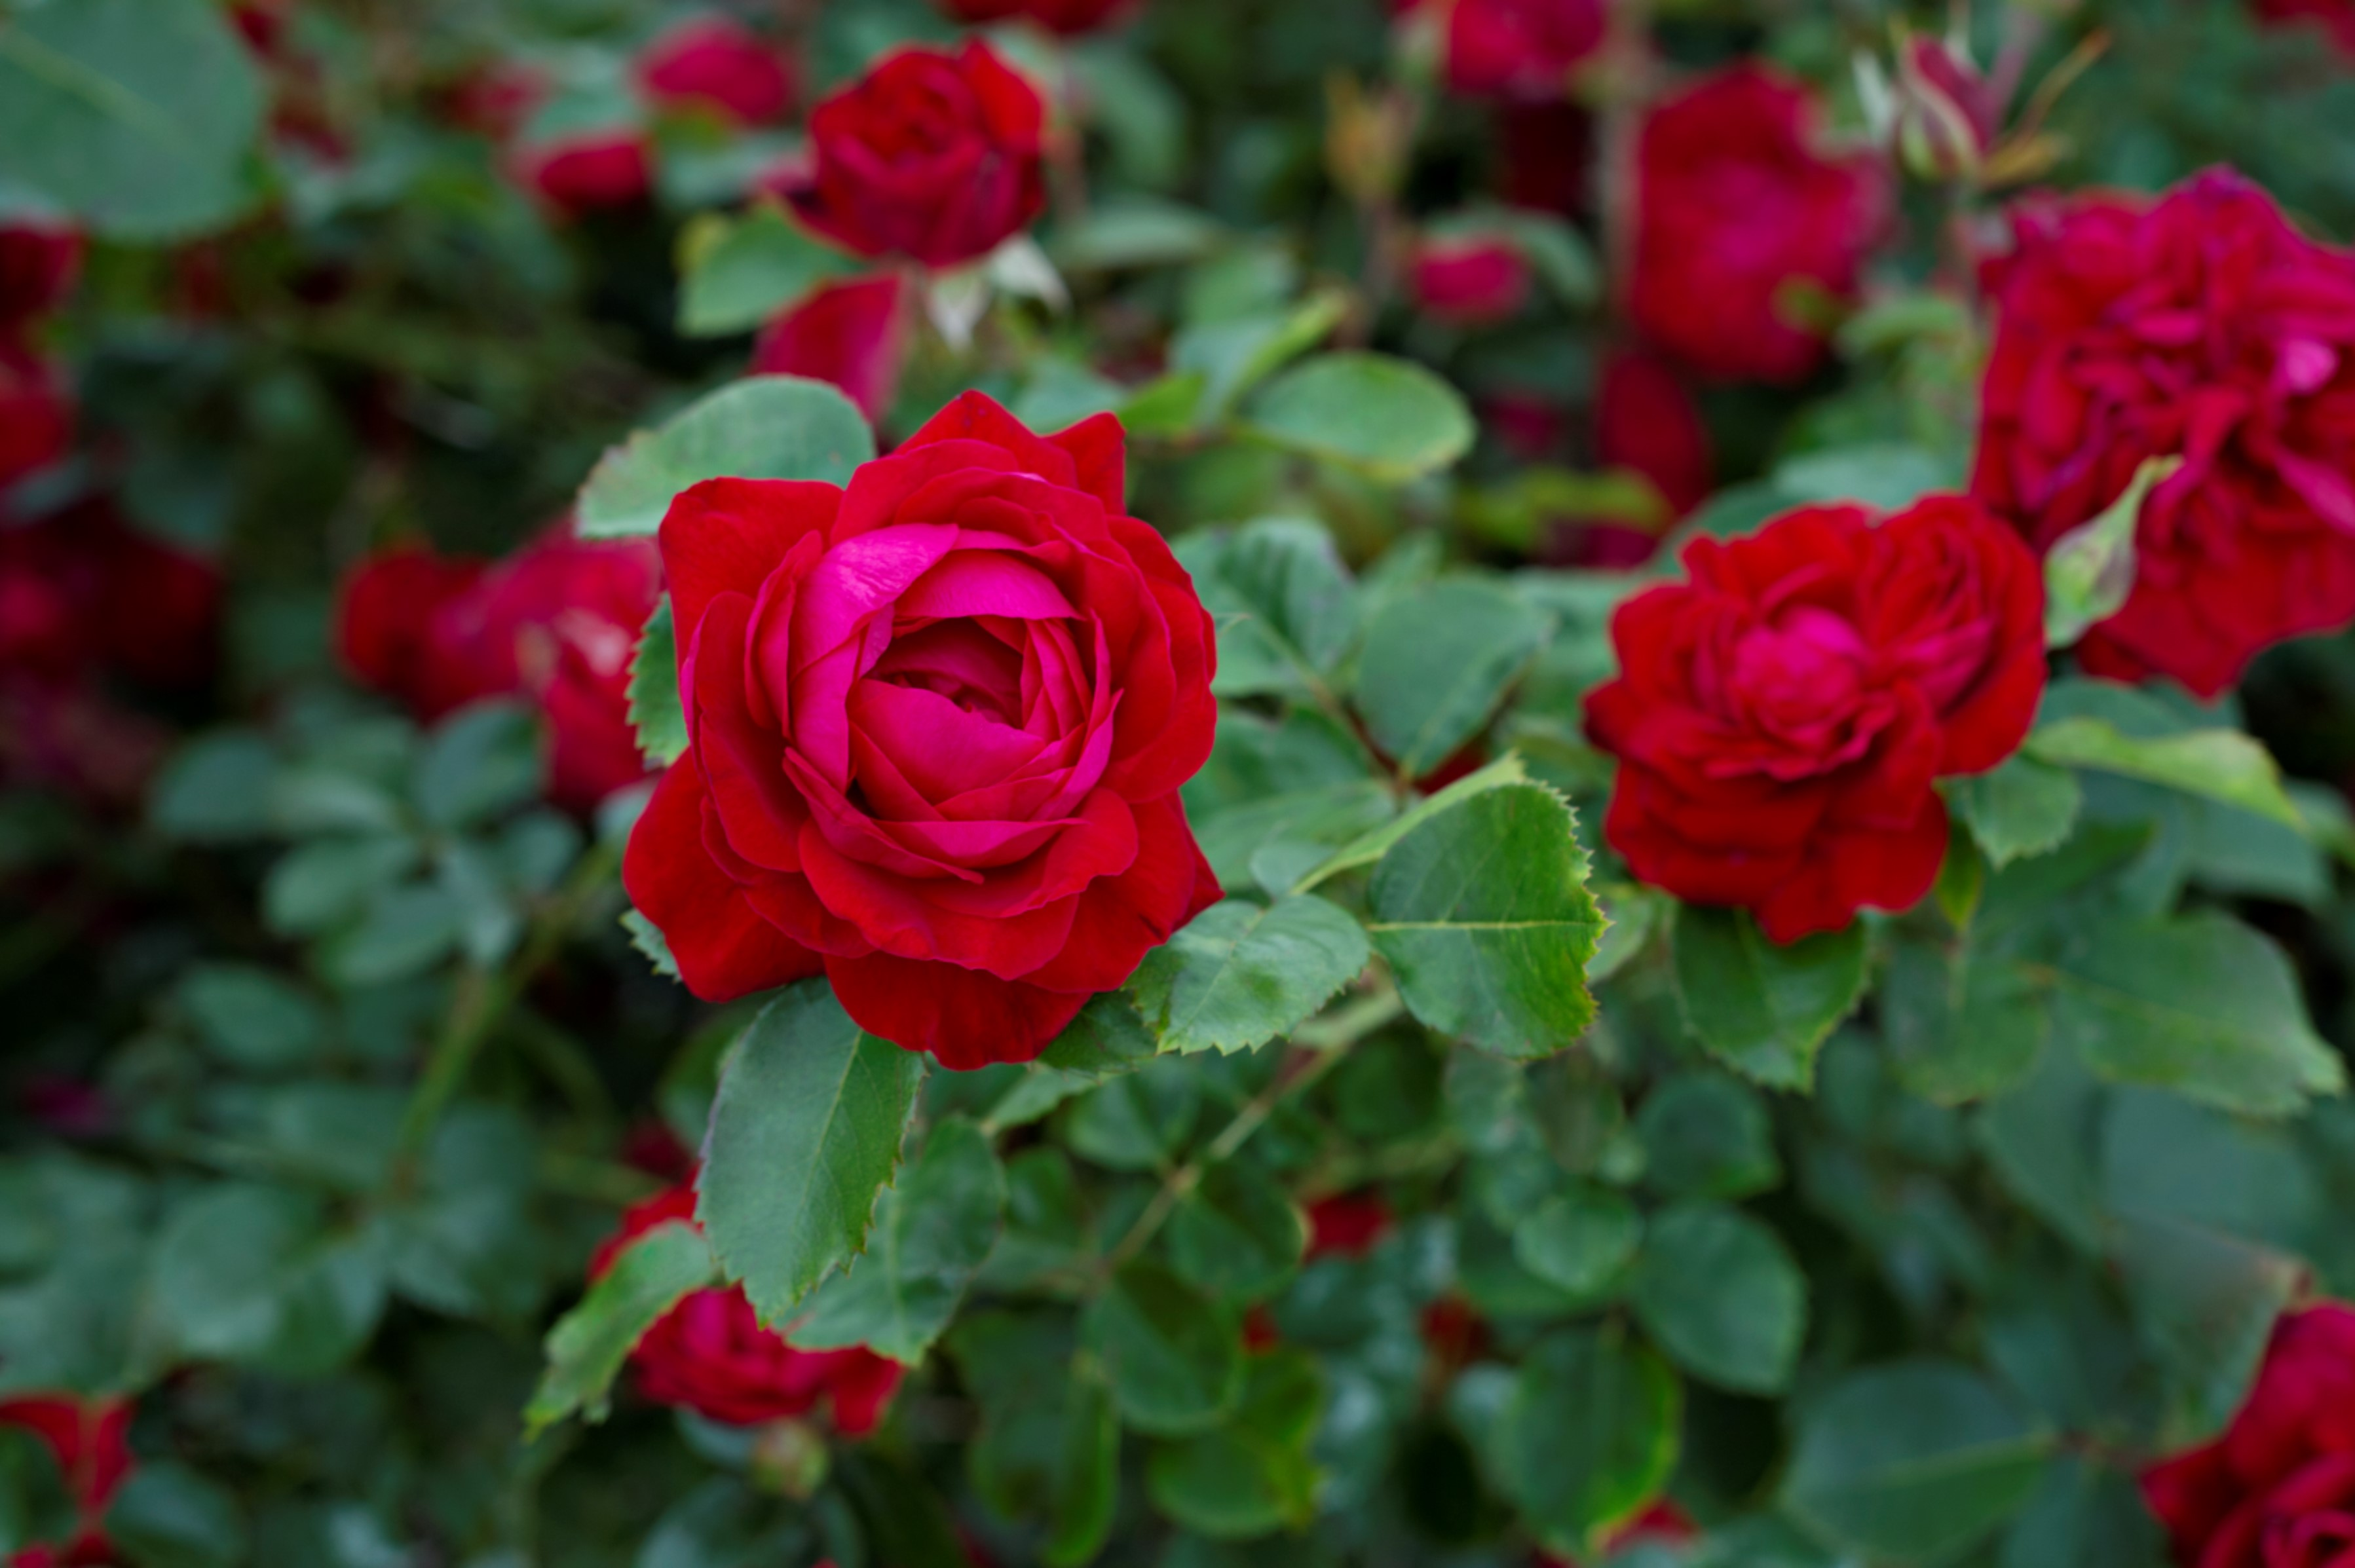 ministry of the fence celebrate canada with a brilliantly hardy rose